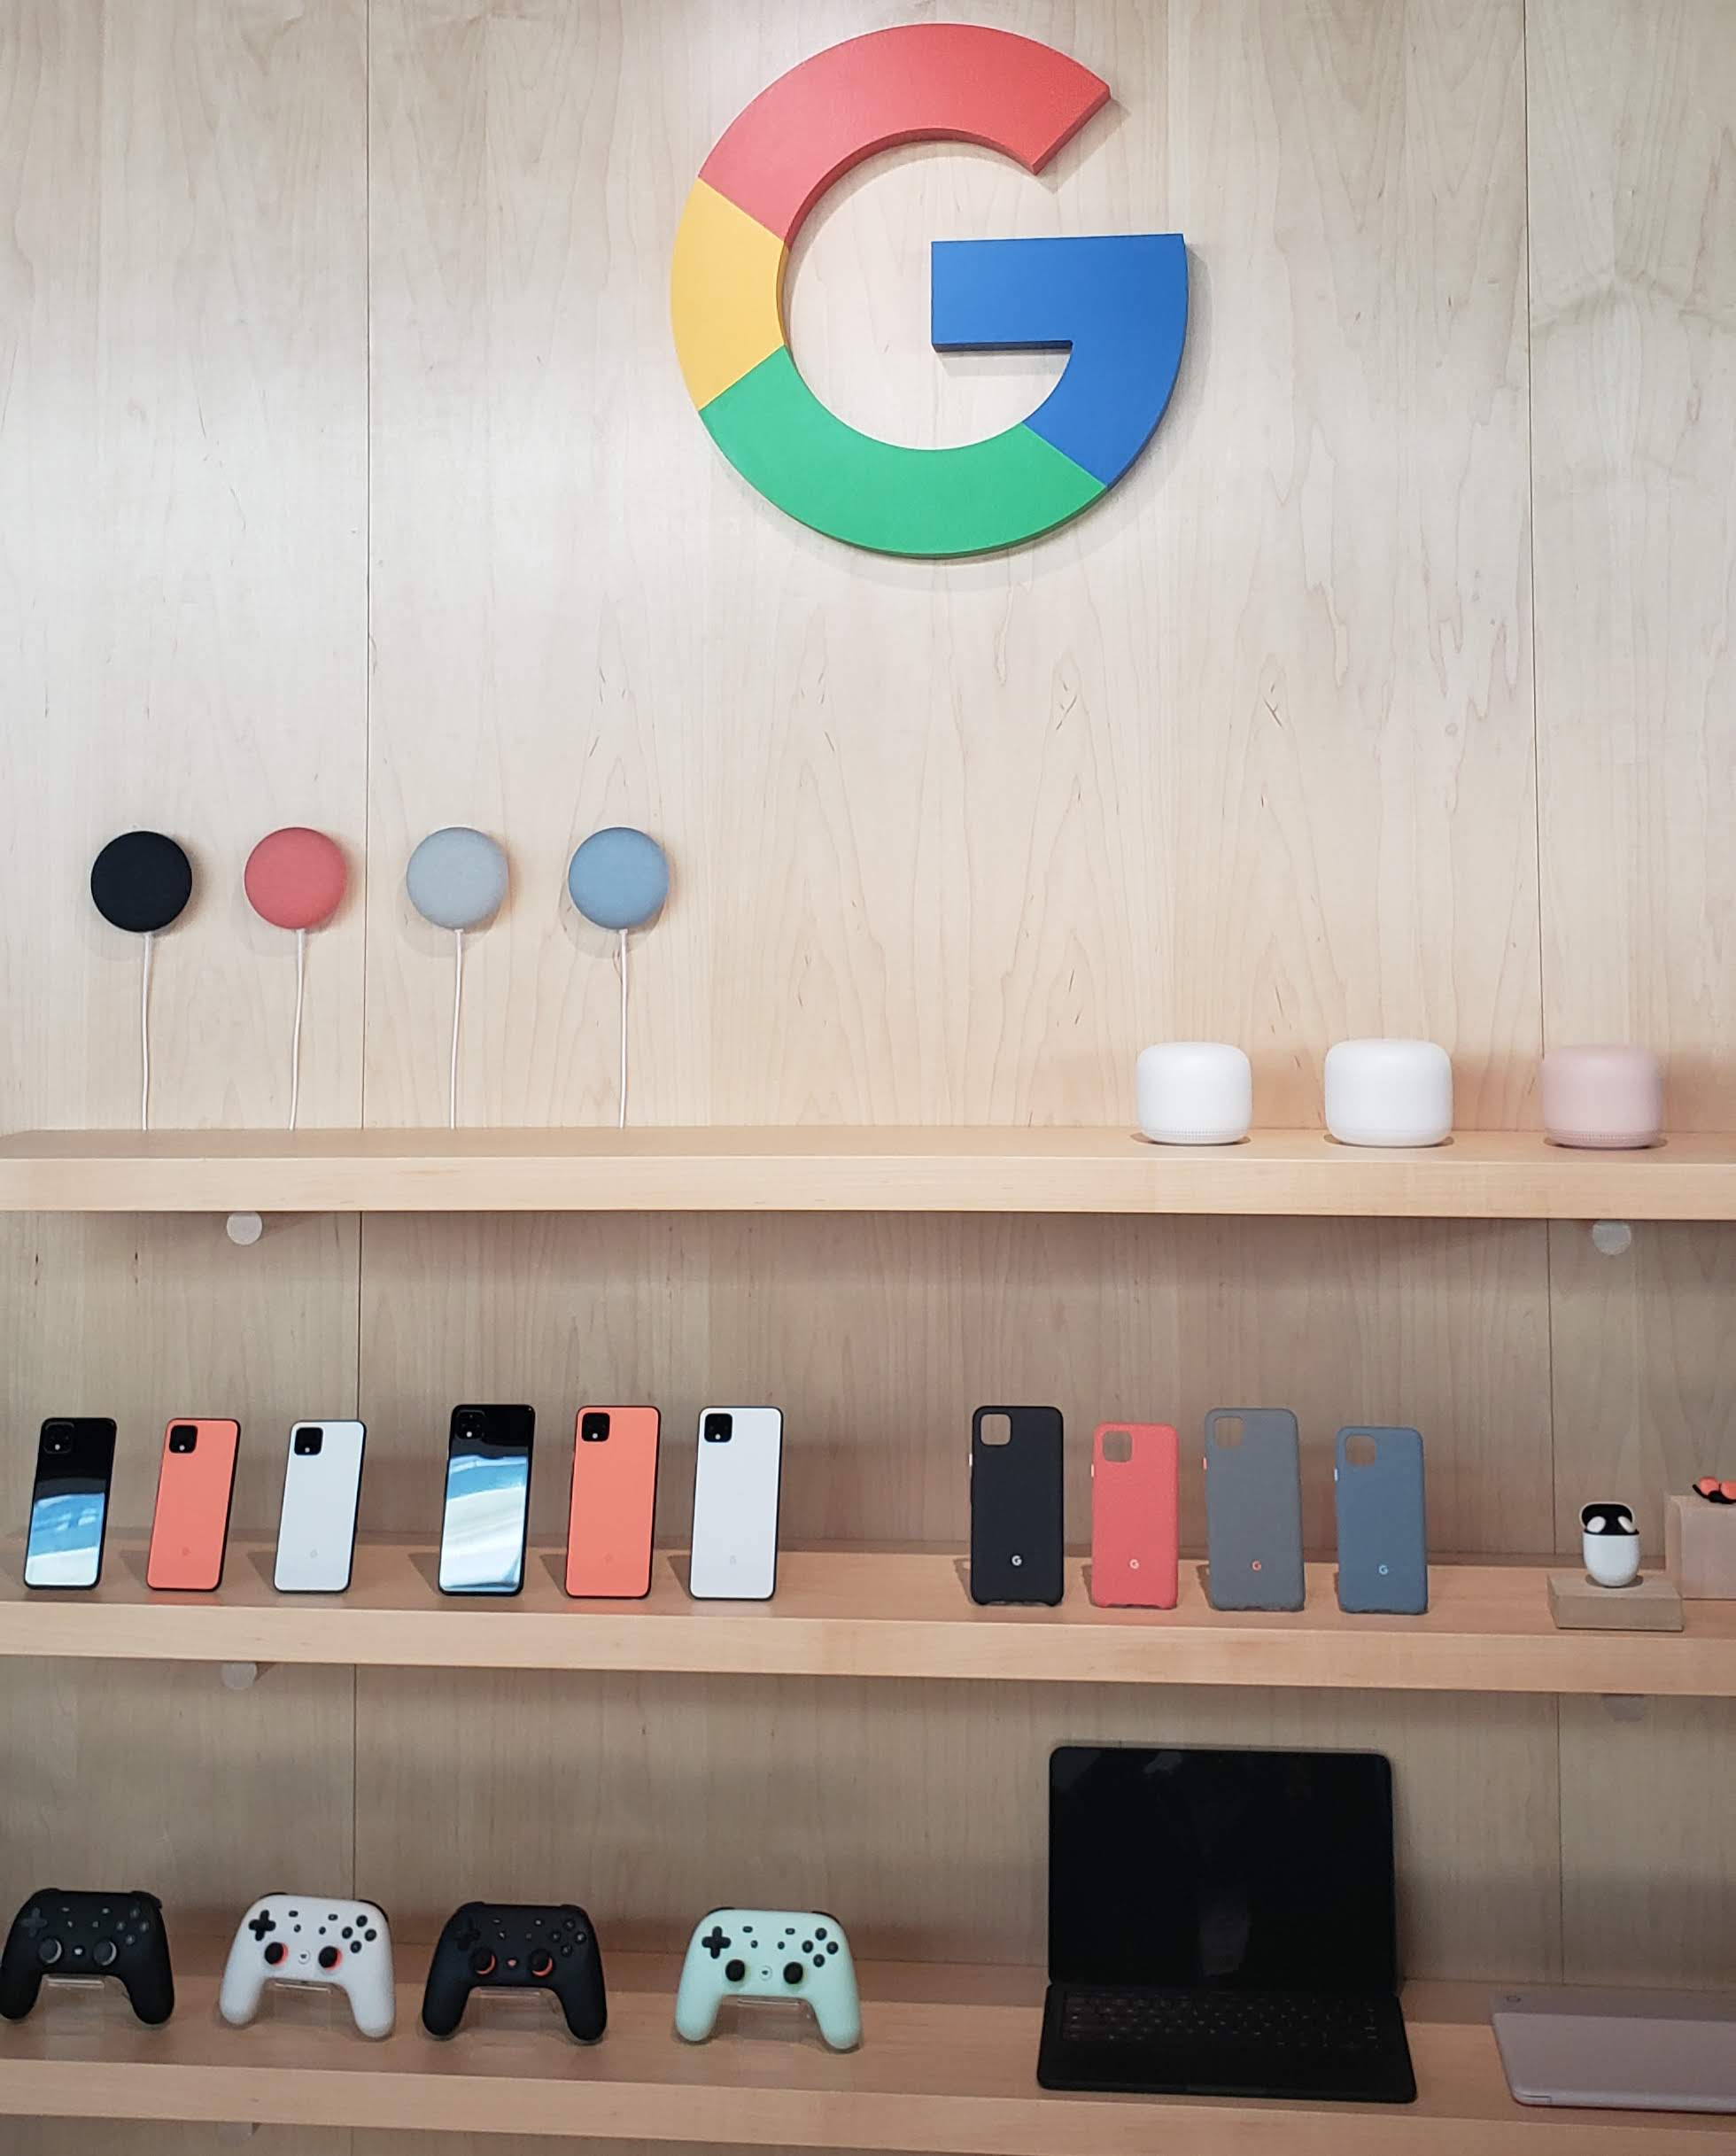 Made By Google...Ready for the Workplace?